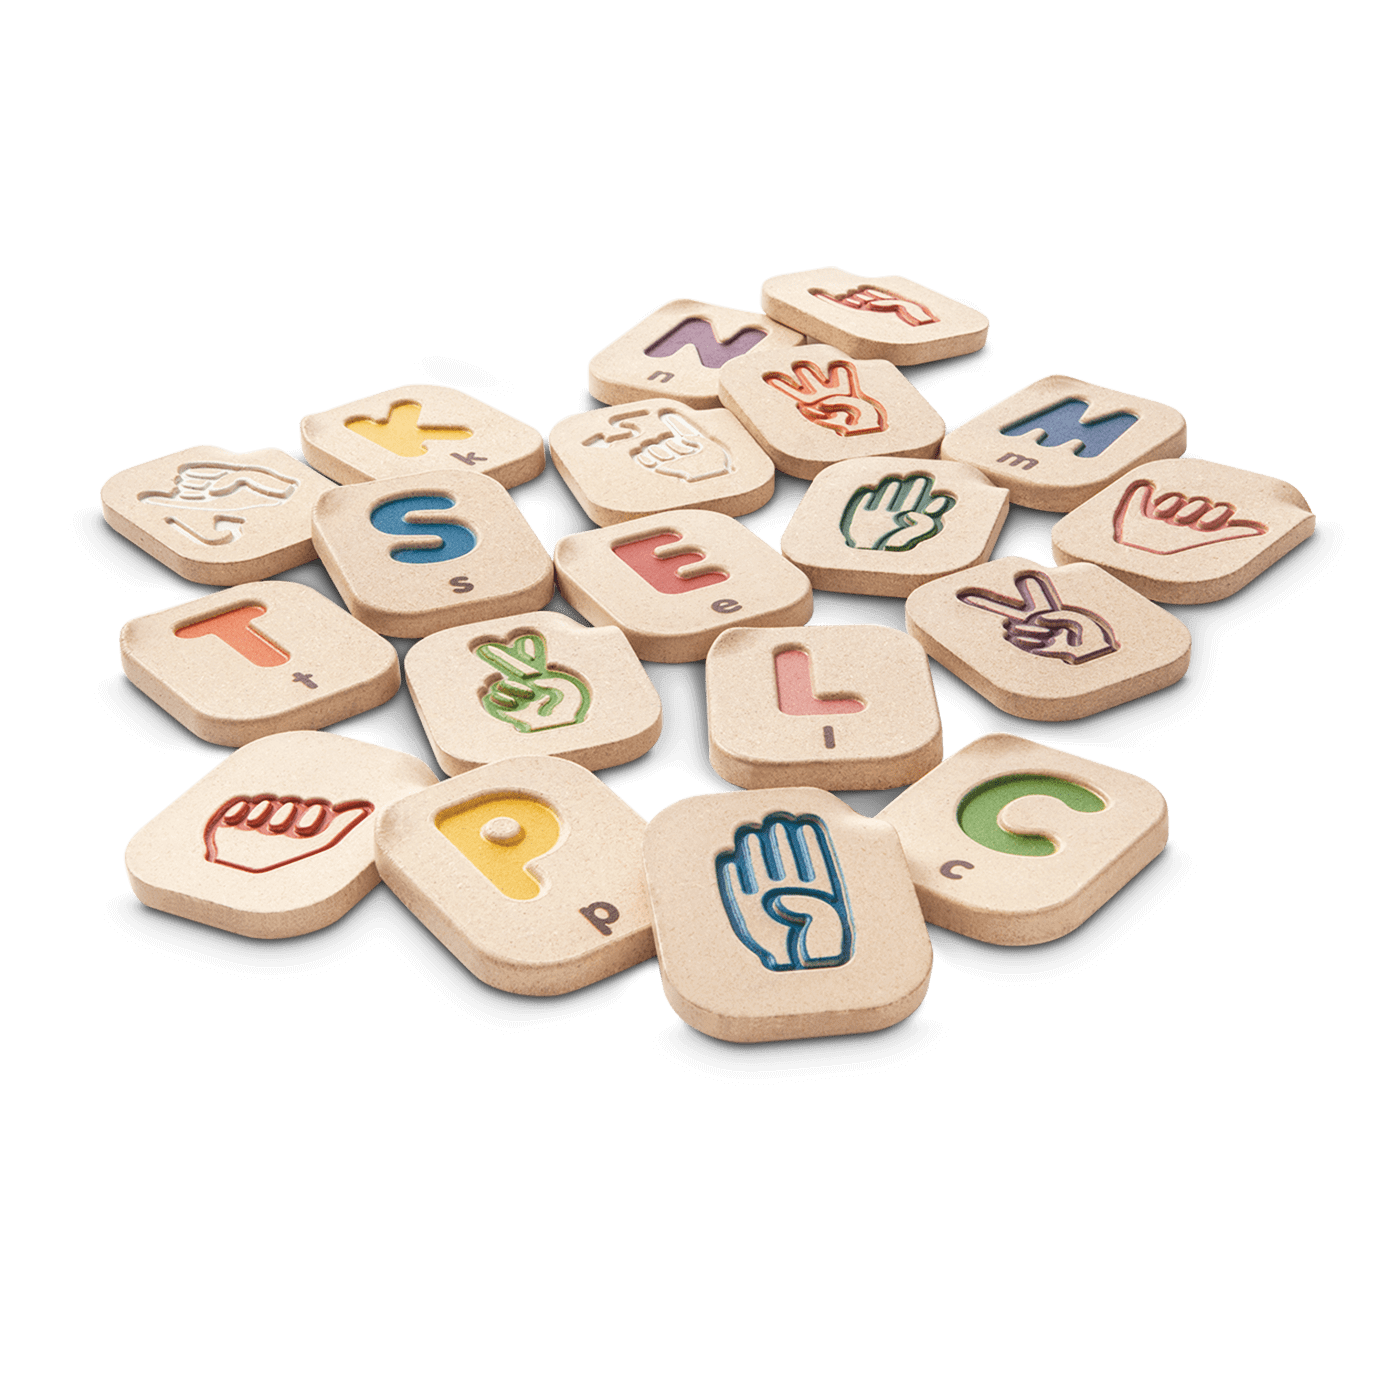 5672_PlanToys_HAND_SIGN_ALPHABET_A-Z_Learning_and_Education_Fine_Motor_Language_and_Communications_2yrs_Wooden_toys_Education_toys_Safety_Toys_Non-toxic_0.png